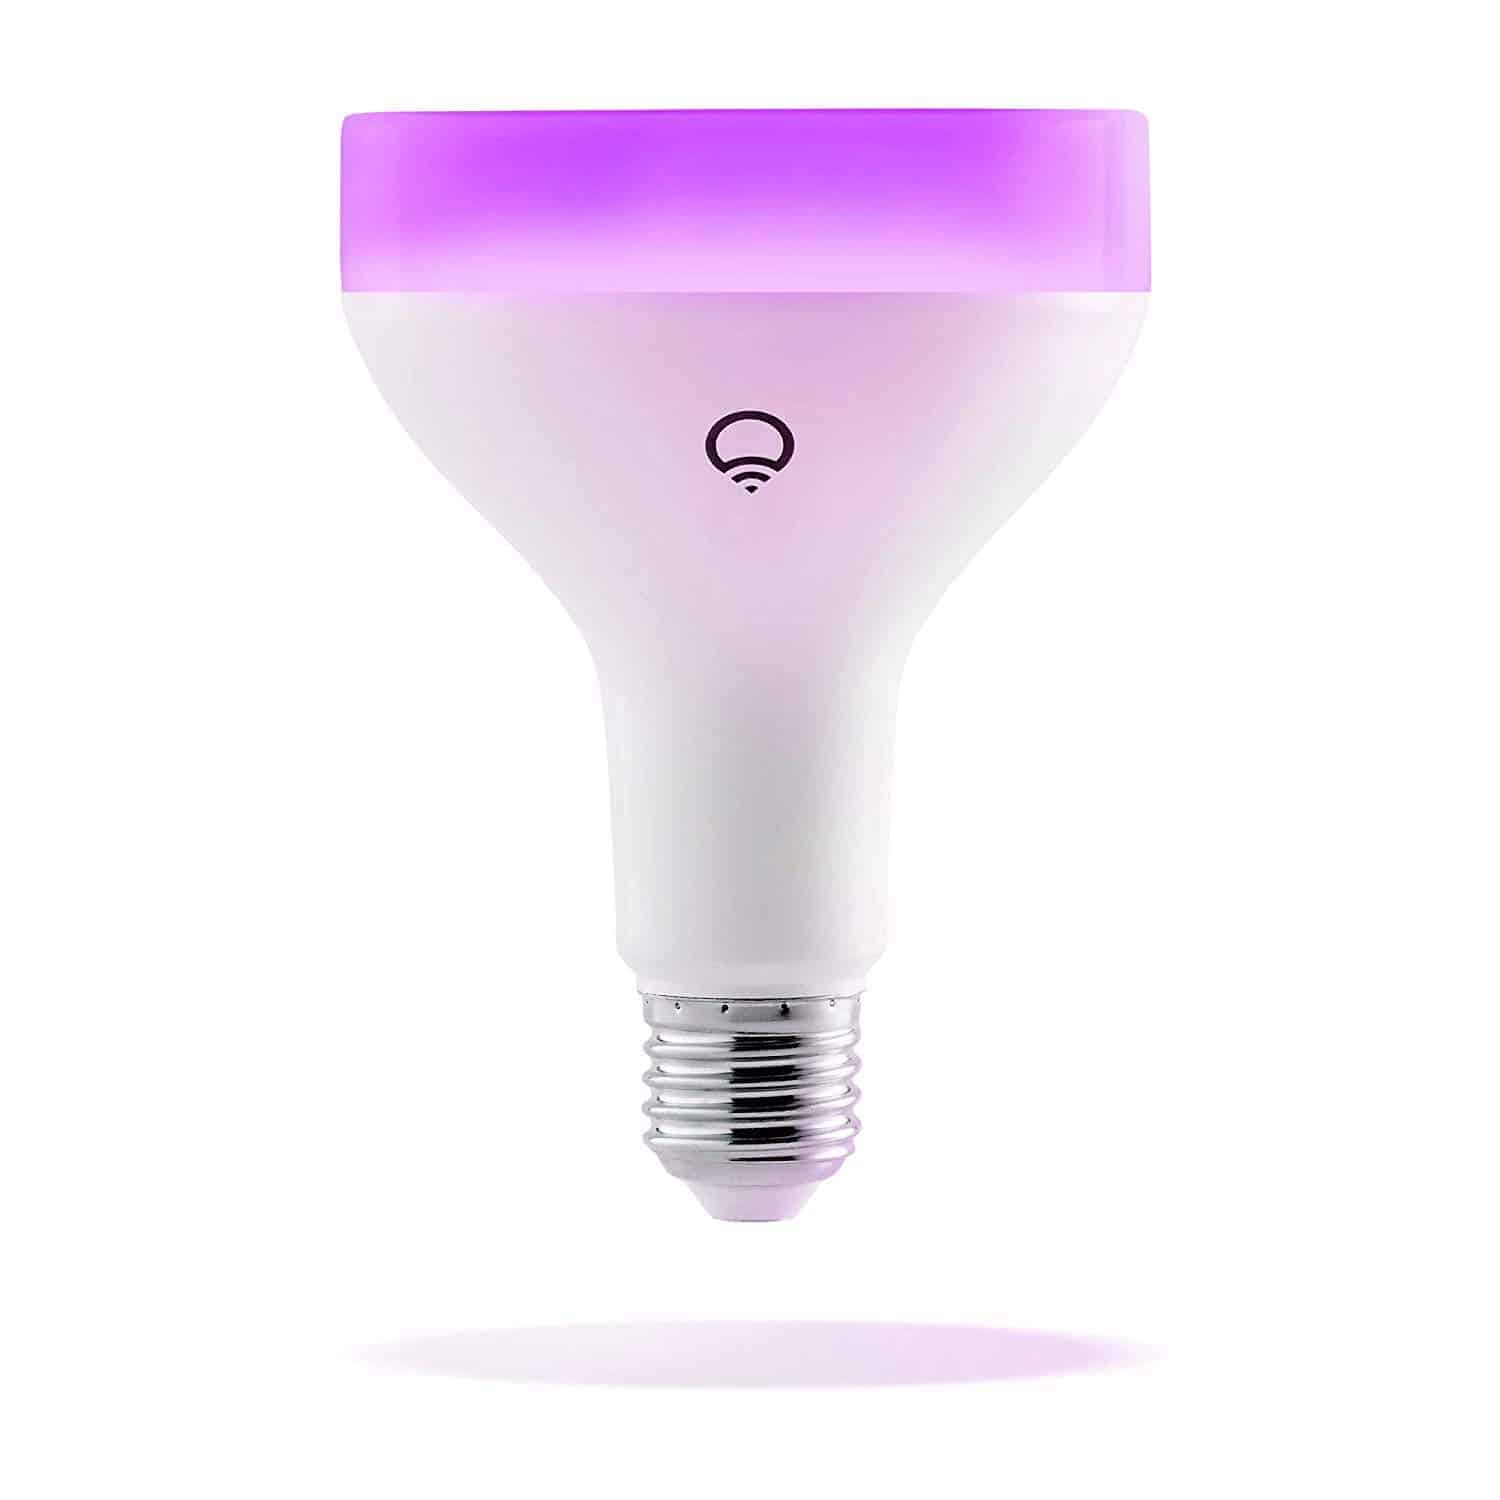 LIFX_Security_BR30_features_1